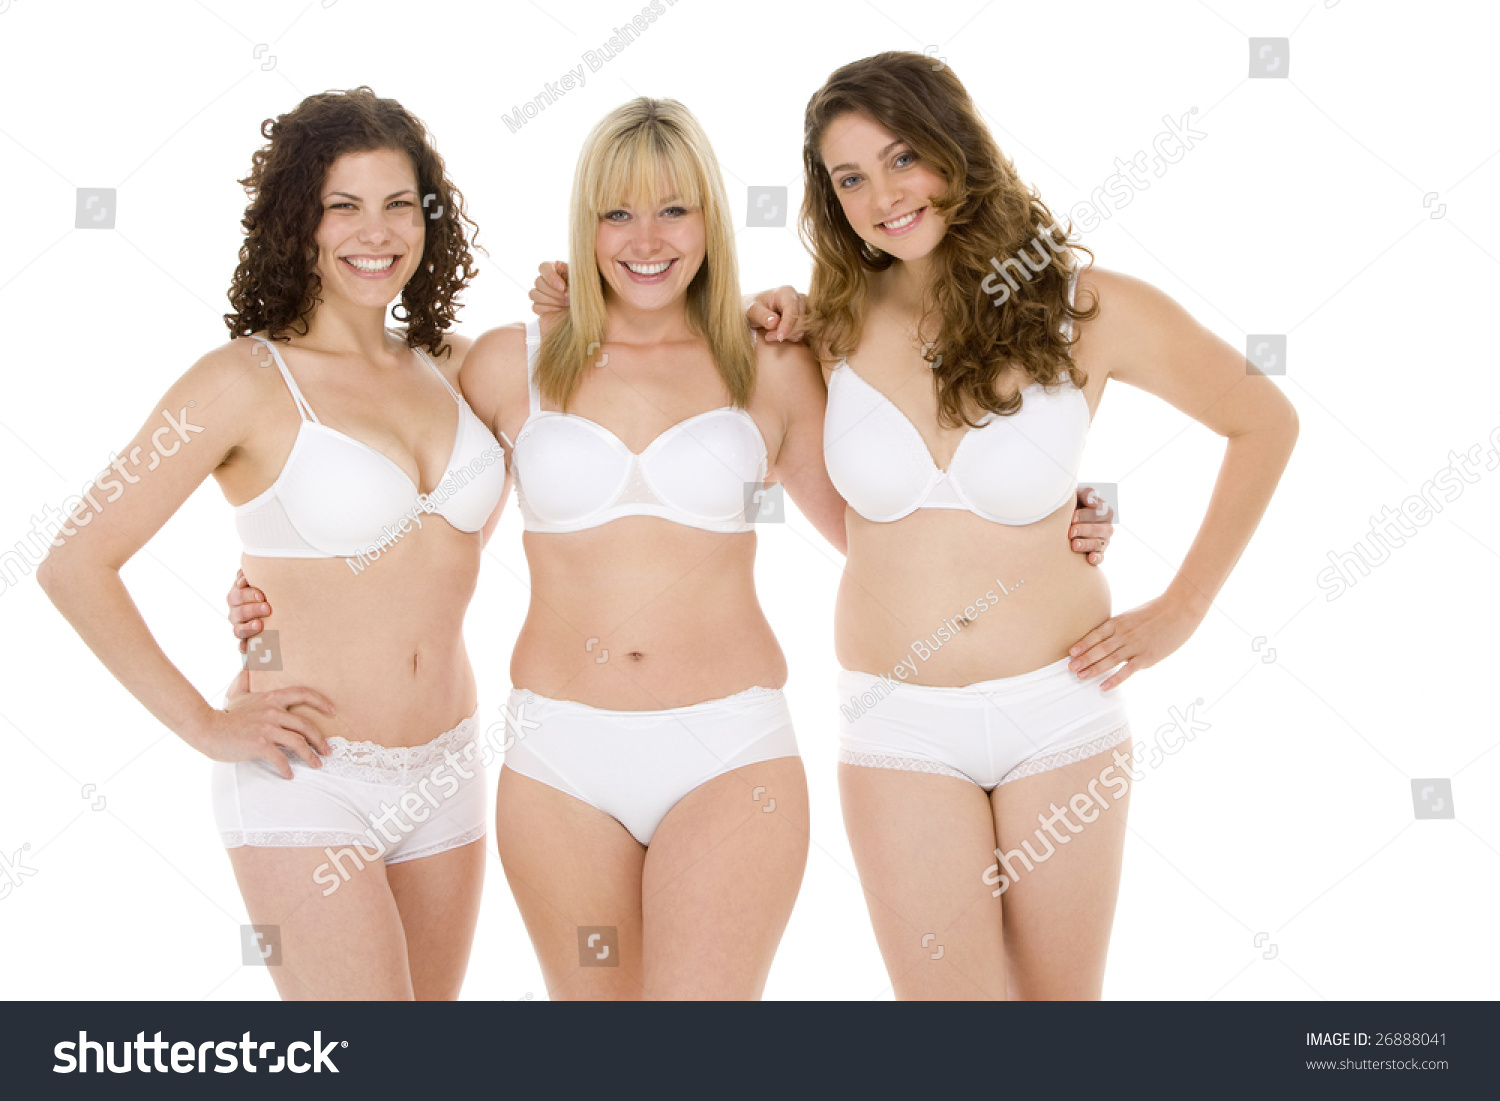 Portrait Plus Size Women Their Underwear Stock Photo 26888041 ...